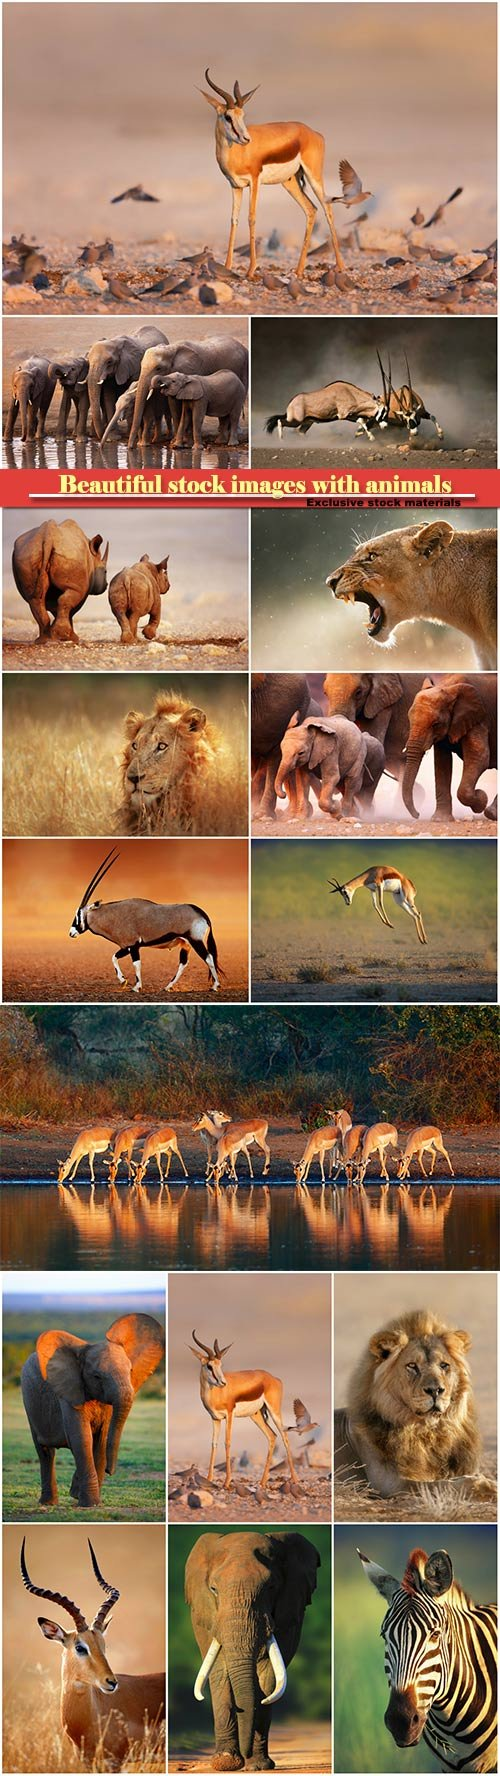 Beautiful stock images with animals, elephants, lion, zebra